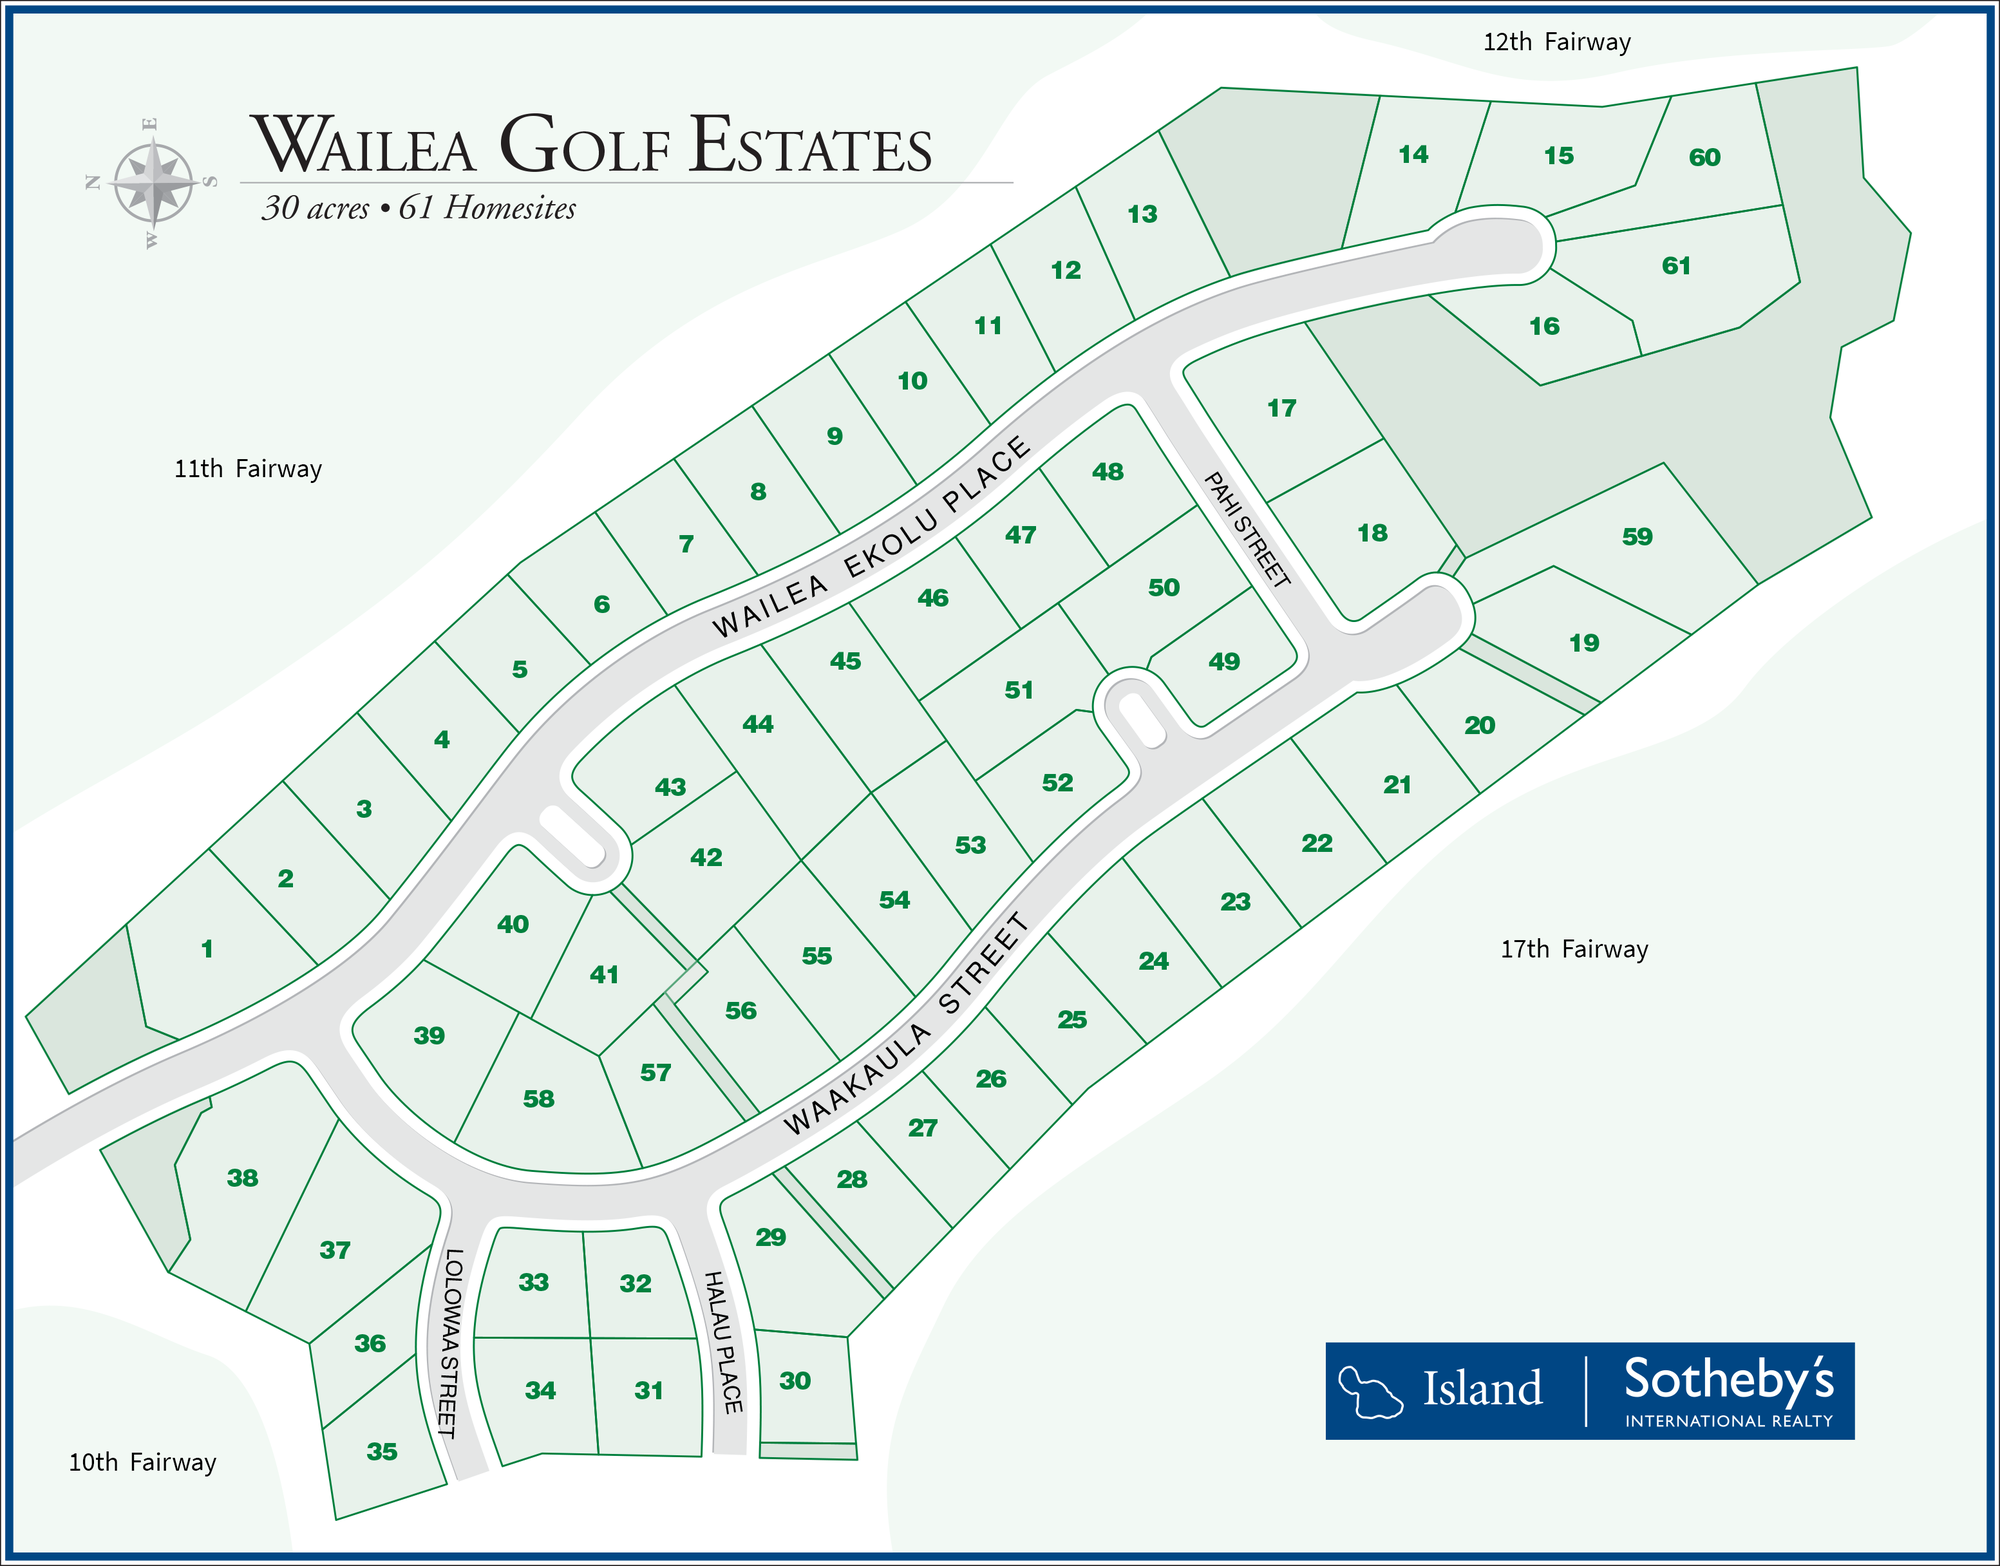 Awesome Tiger Woods Home Address Image - Home Decorating Inspiration ...